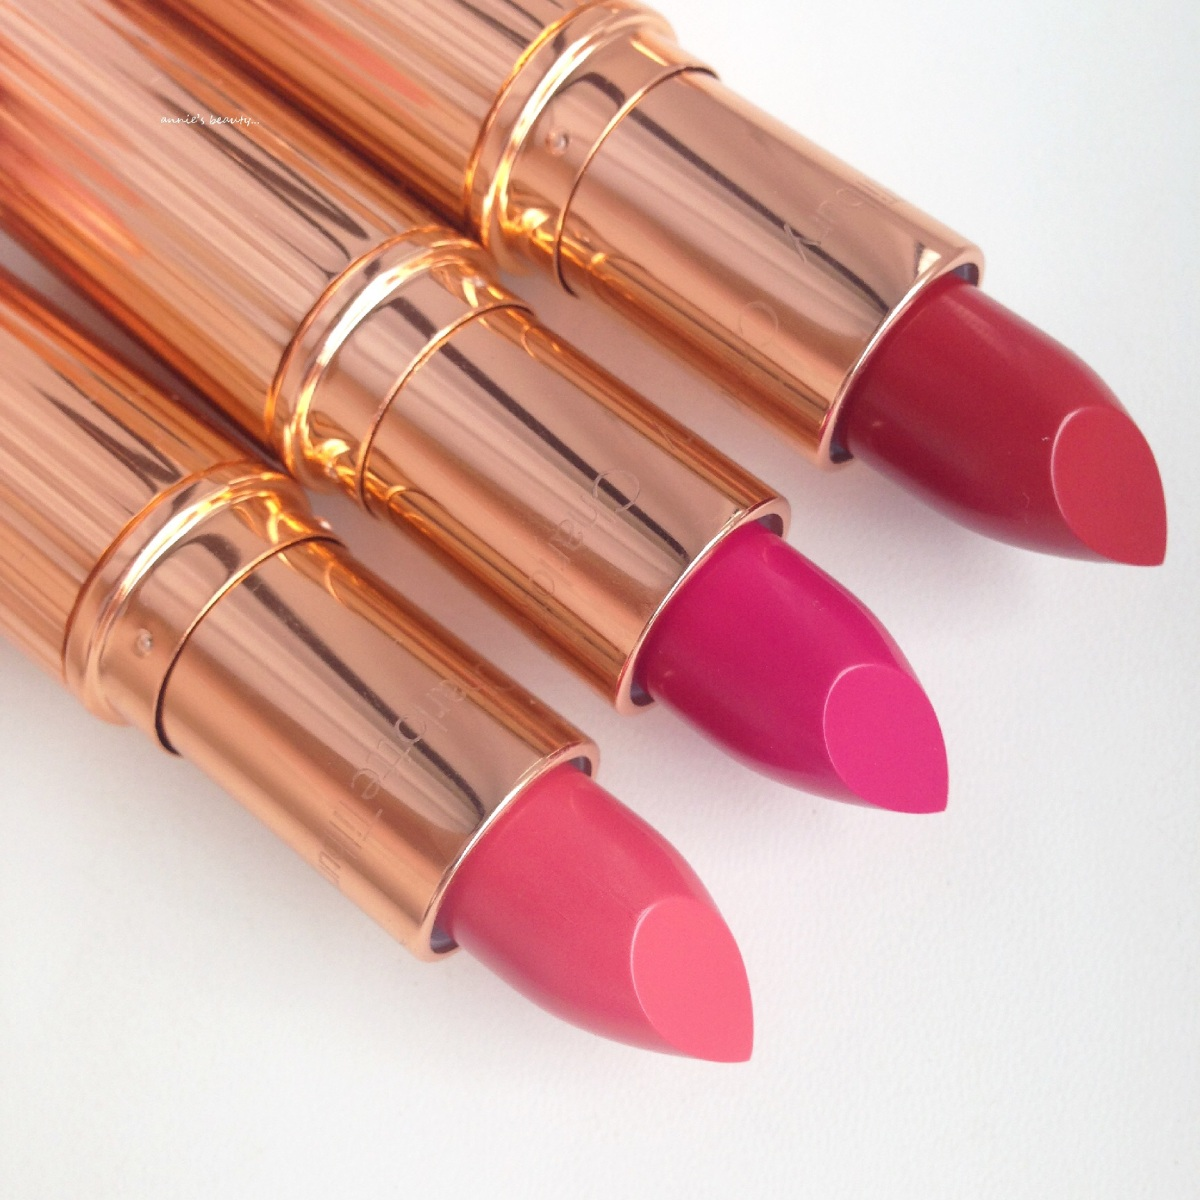 CHARLOTTE TILBURY's K.I.S.S.I.N.G Fallen From The Lip Stick Tree in Coachella Coral, Velvet Underground and So Marilyn